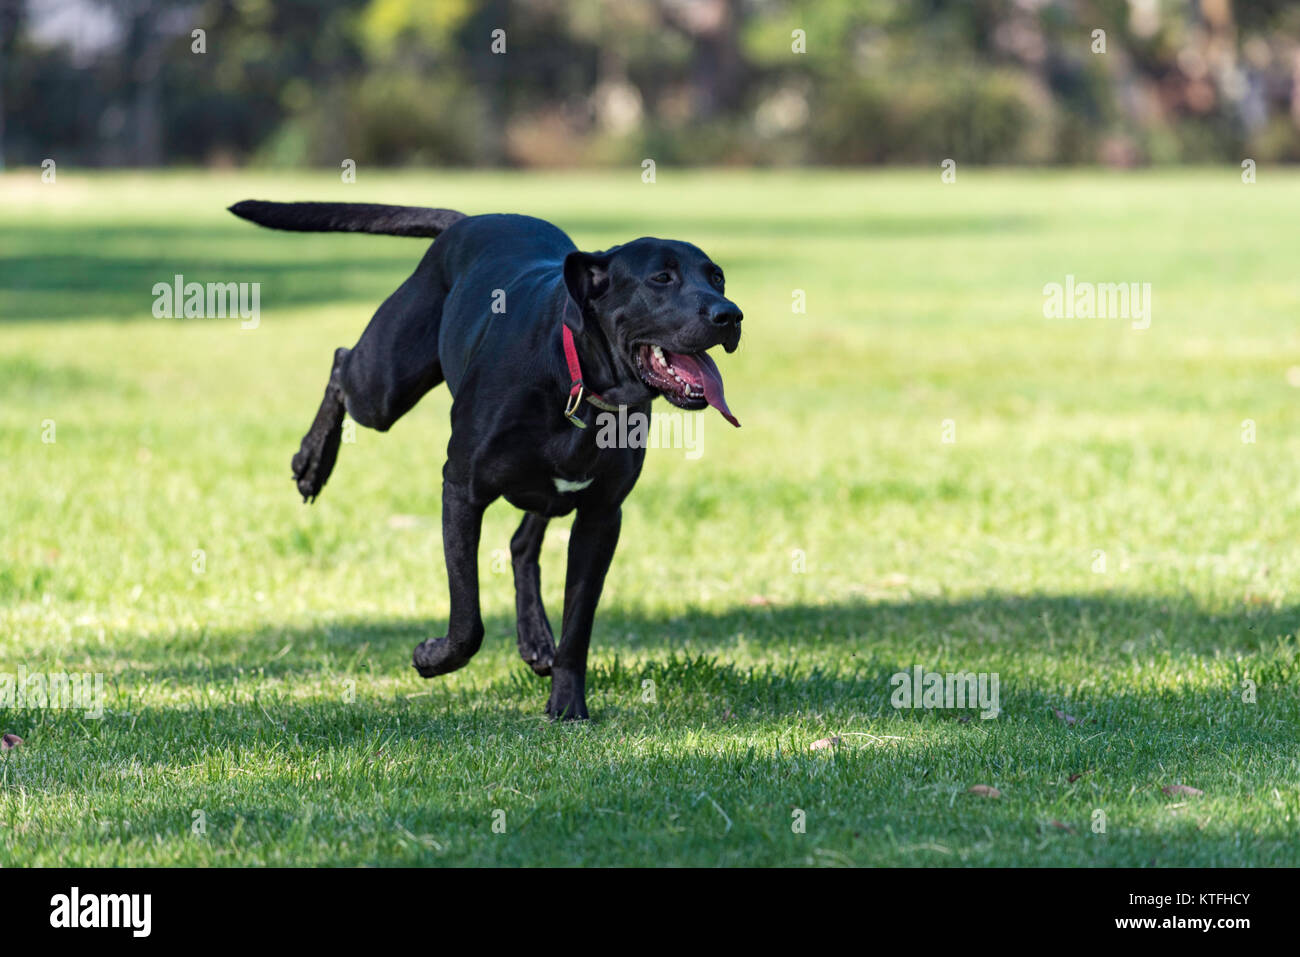 A big black dog happily running in a park in Sydney - Stock Image